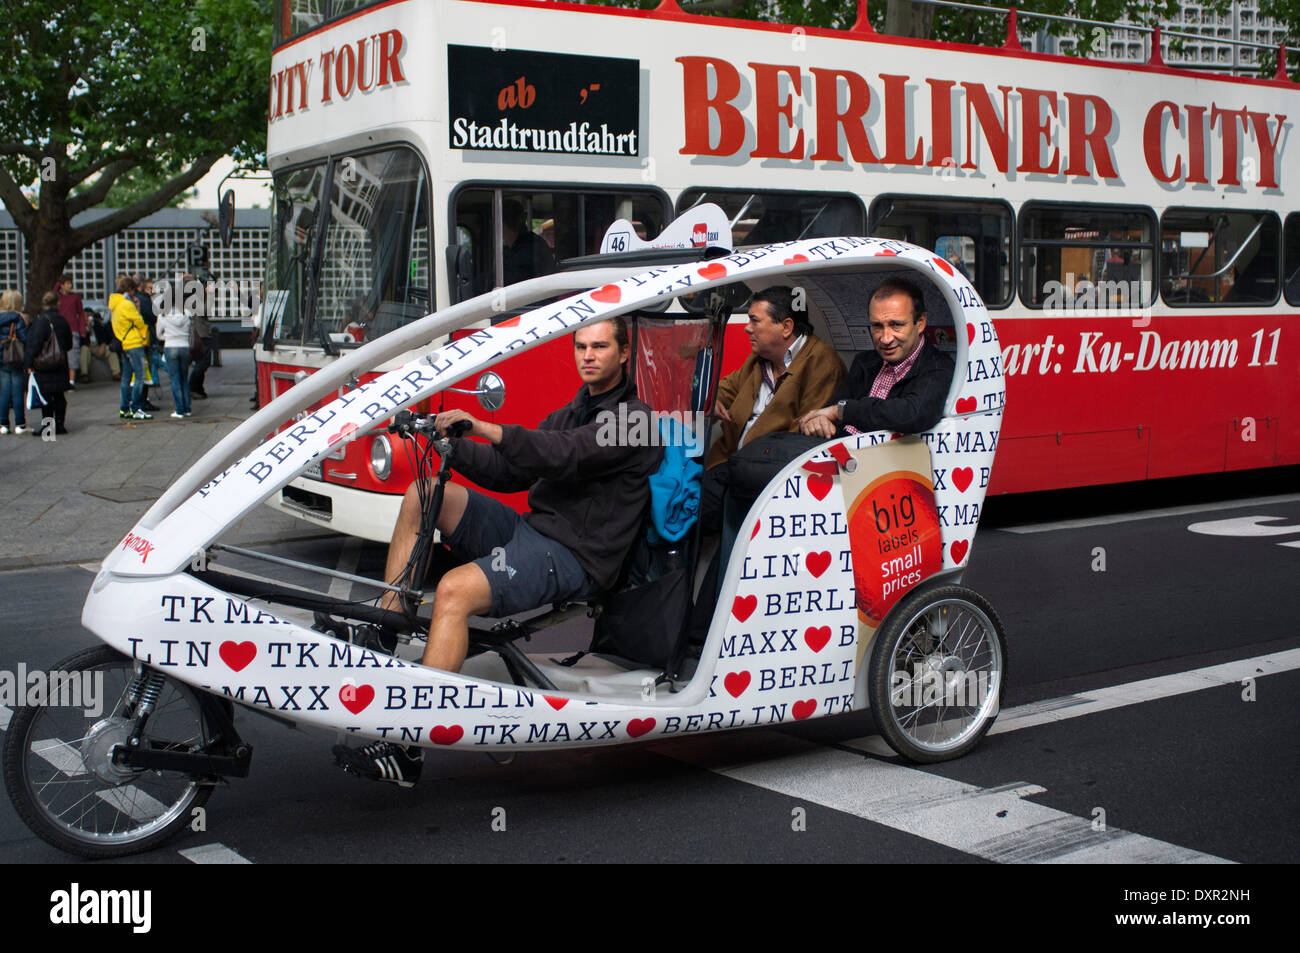 Turistic bus and Tourist Bicycle in Berlin, Germany. Berliner City Bus. If you decided to visit Berlin, a bike tour is the best - Stock Image